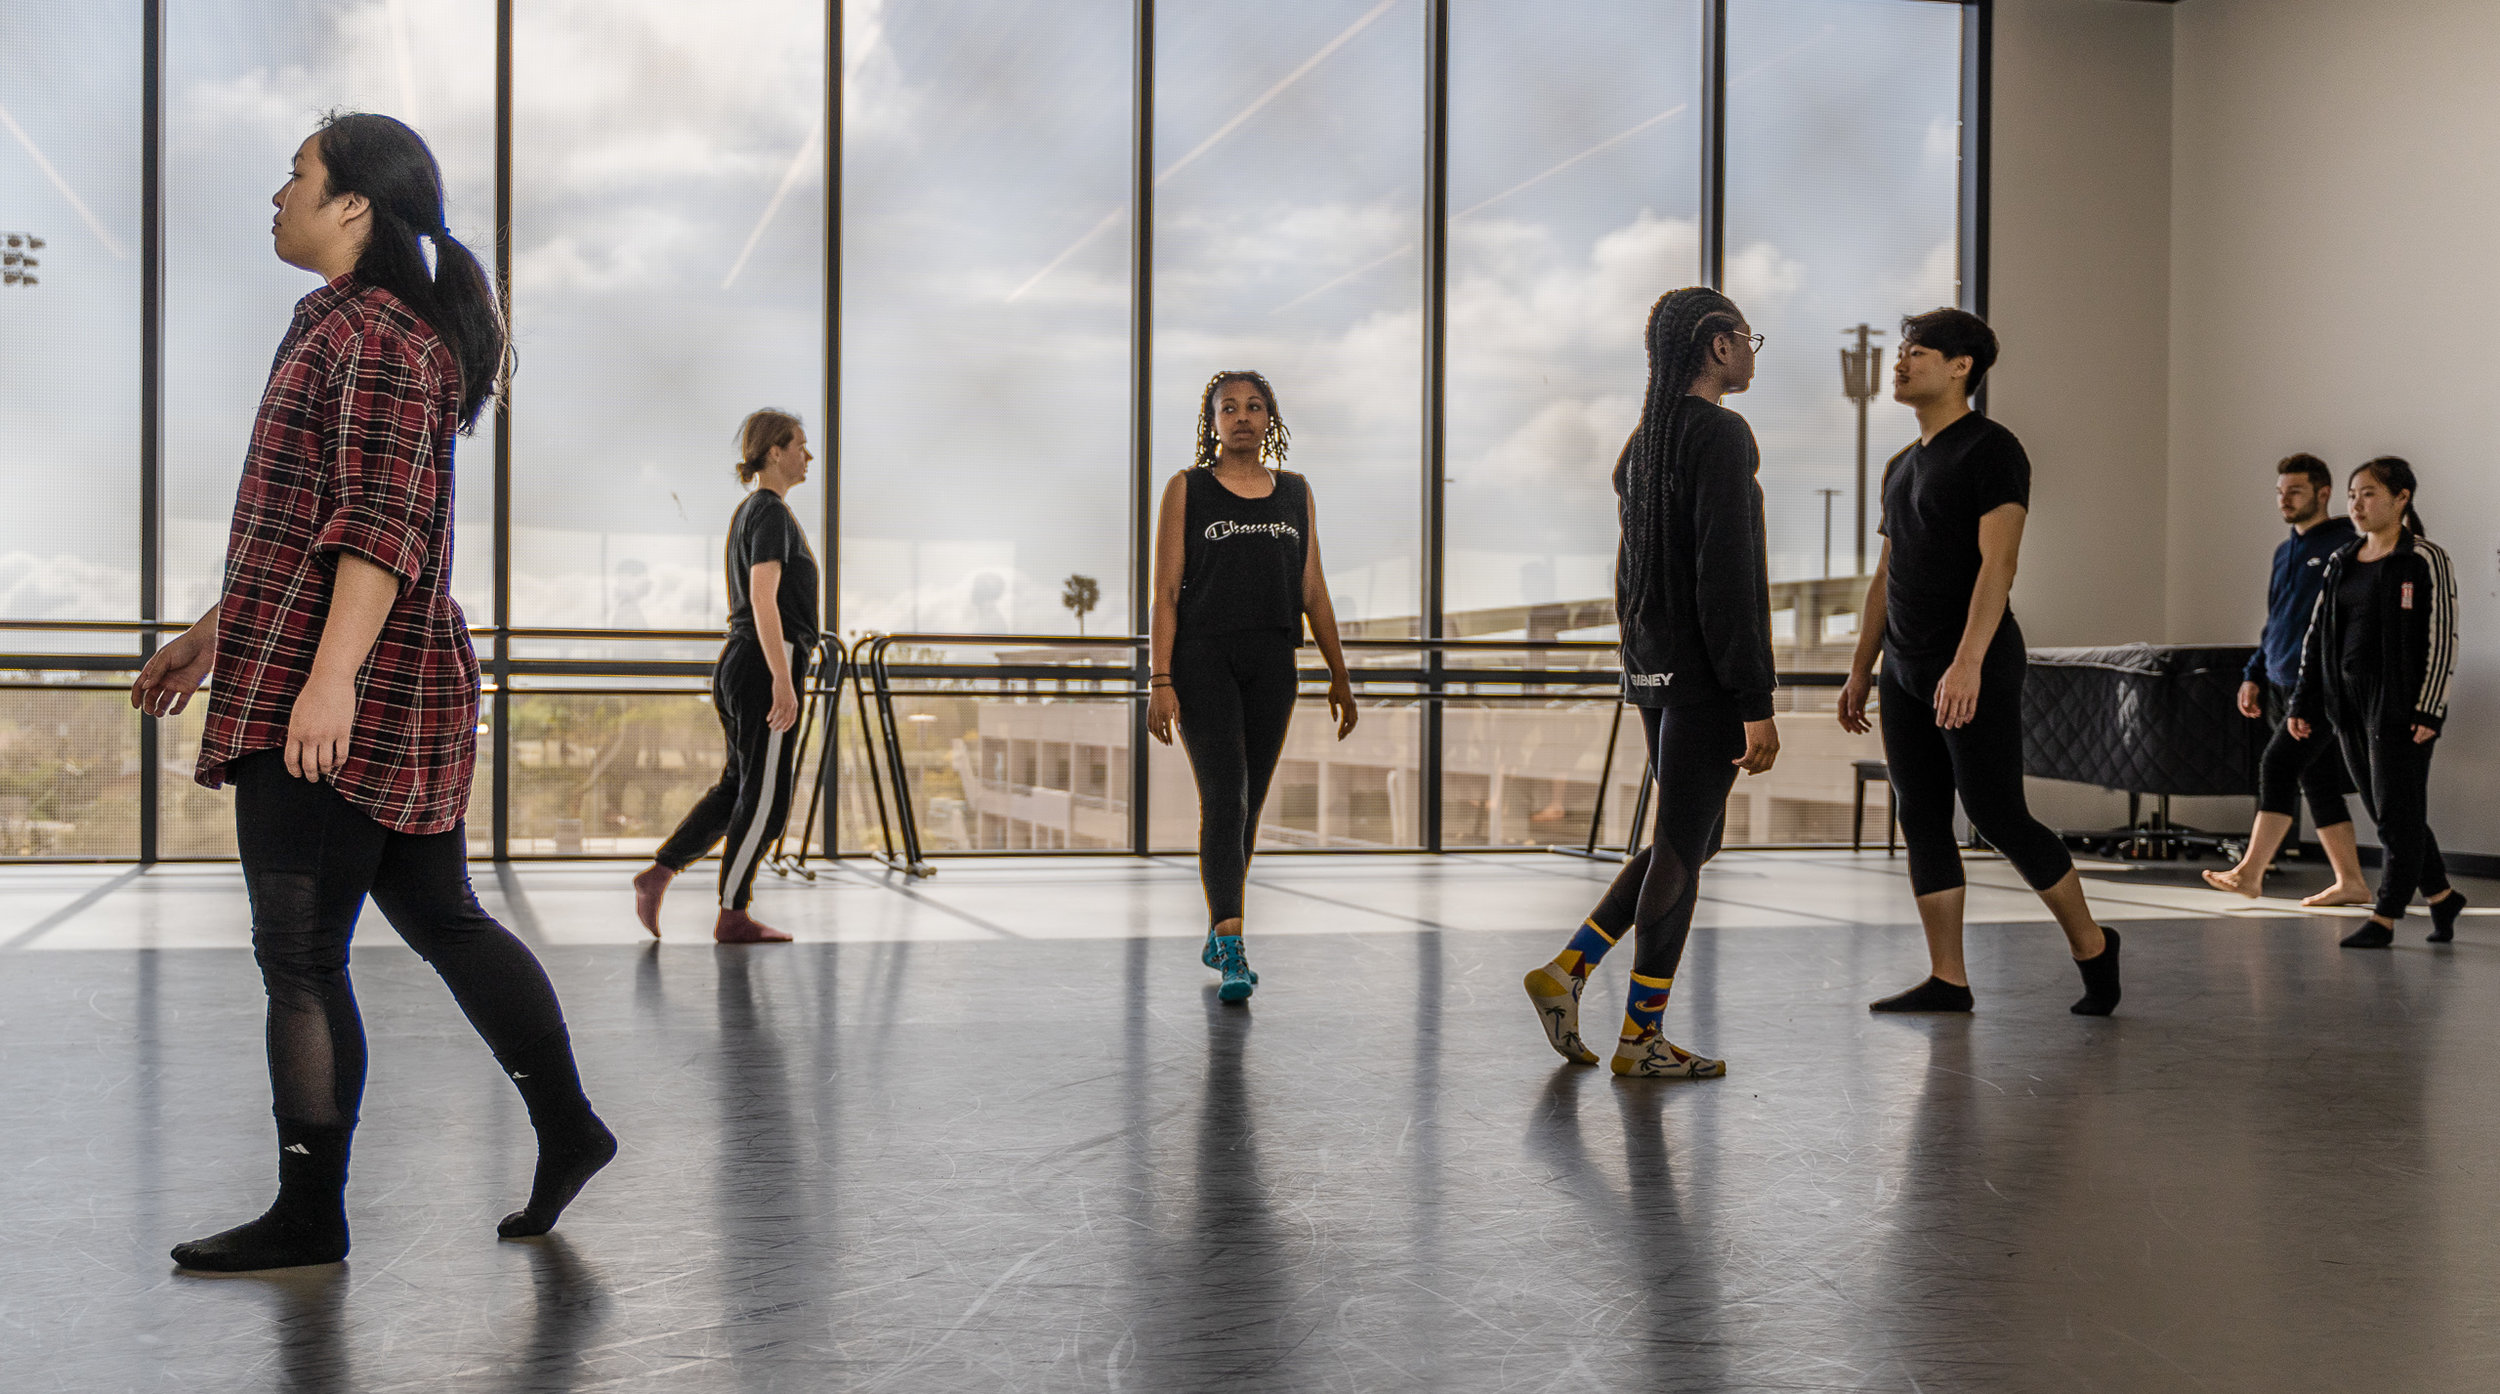 SMC dancers explore movement along a right-angle grid in a rehearsal for student choreographer Aya Nakaguchi's new, not-yet-titled work for Synapse Dance Theater in the Core Performance Center (CPC) on Tuesday, April 2, 2019. Synapse Dance Theater will be presented on Friday and Saturday, May 24 and 25, on the SMC Broad Stage at the Performing Arts Complex (PAC) (Glenn Zucman/The Corsair)